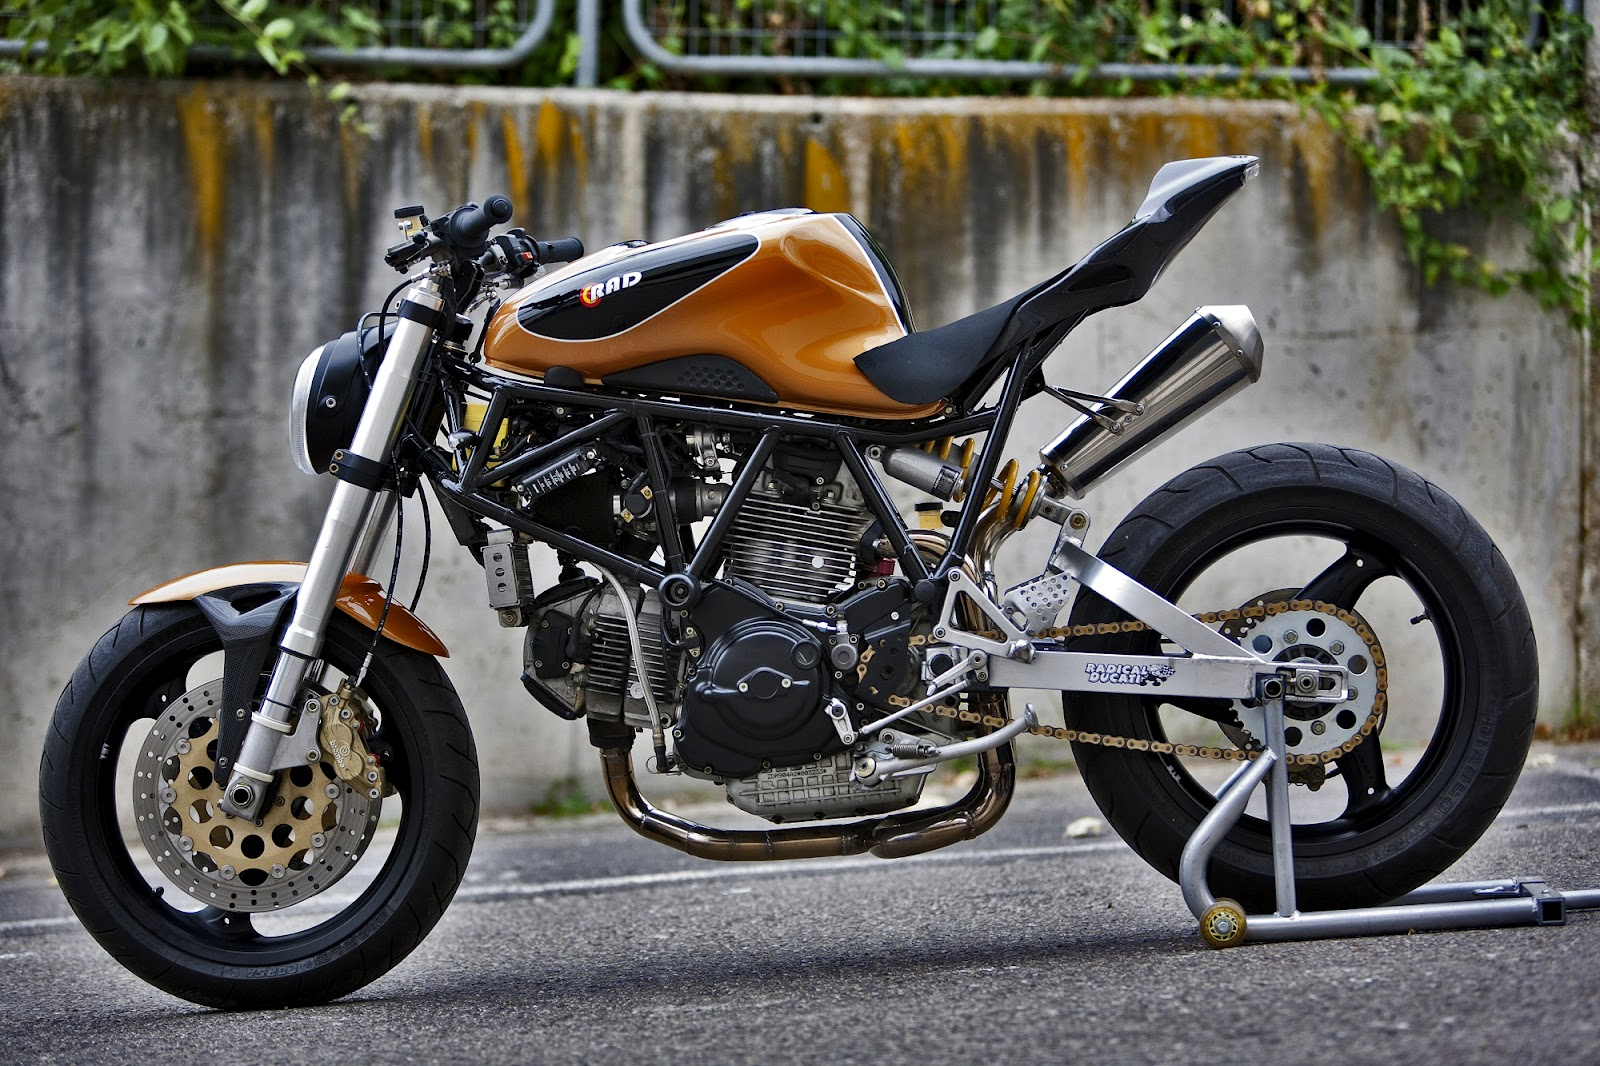 supersport cafe project - which year/model should i choose